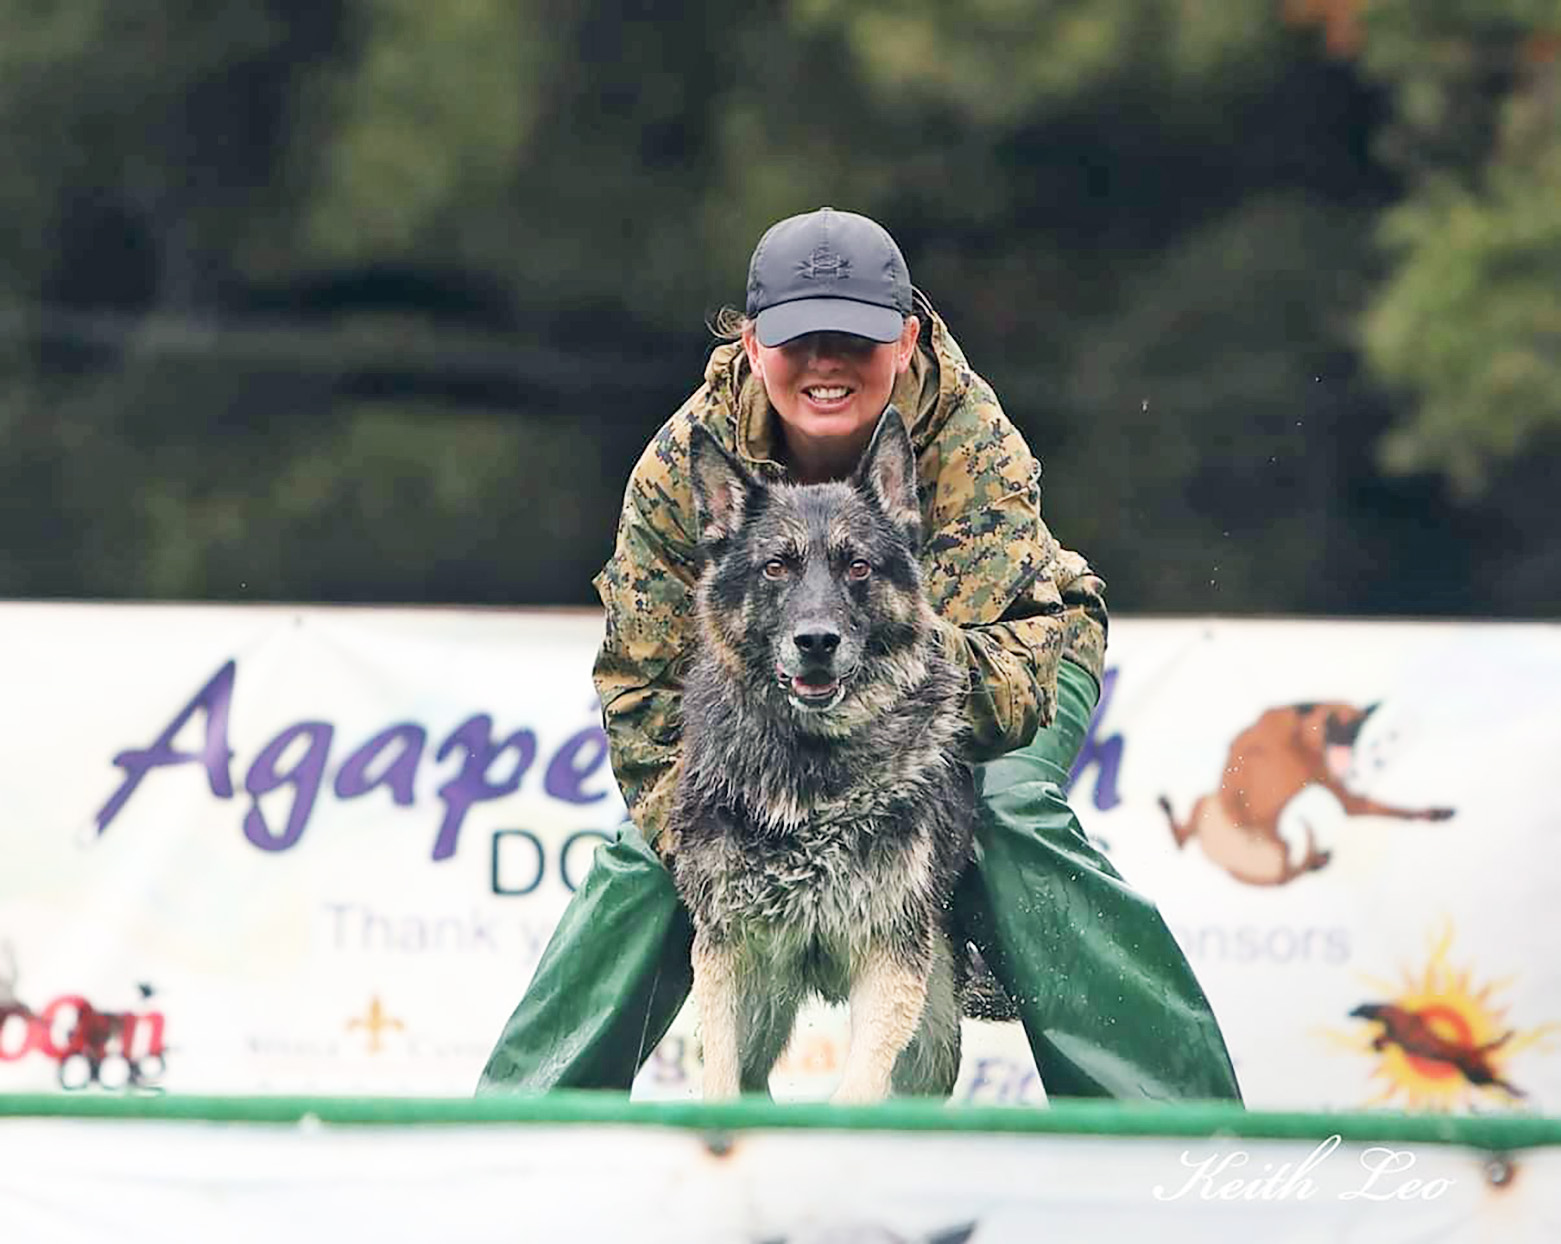 Krystal Tronboll and military working dog Zorro dock diving